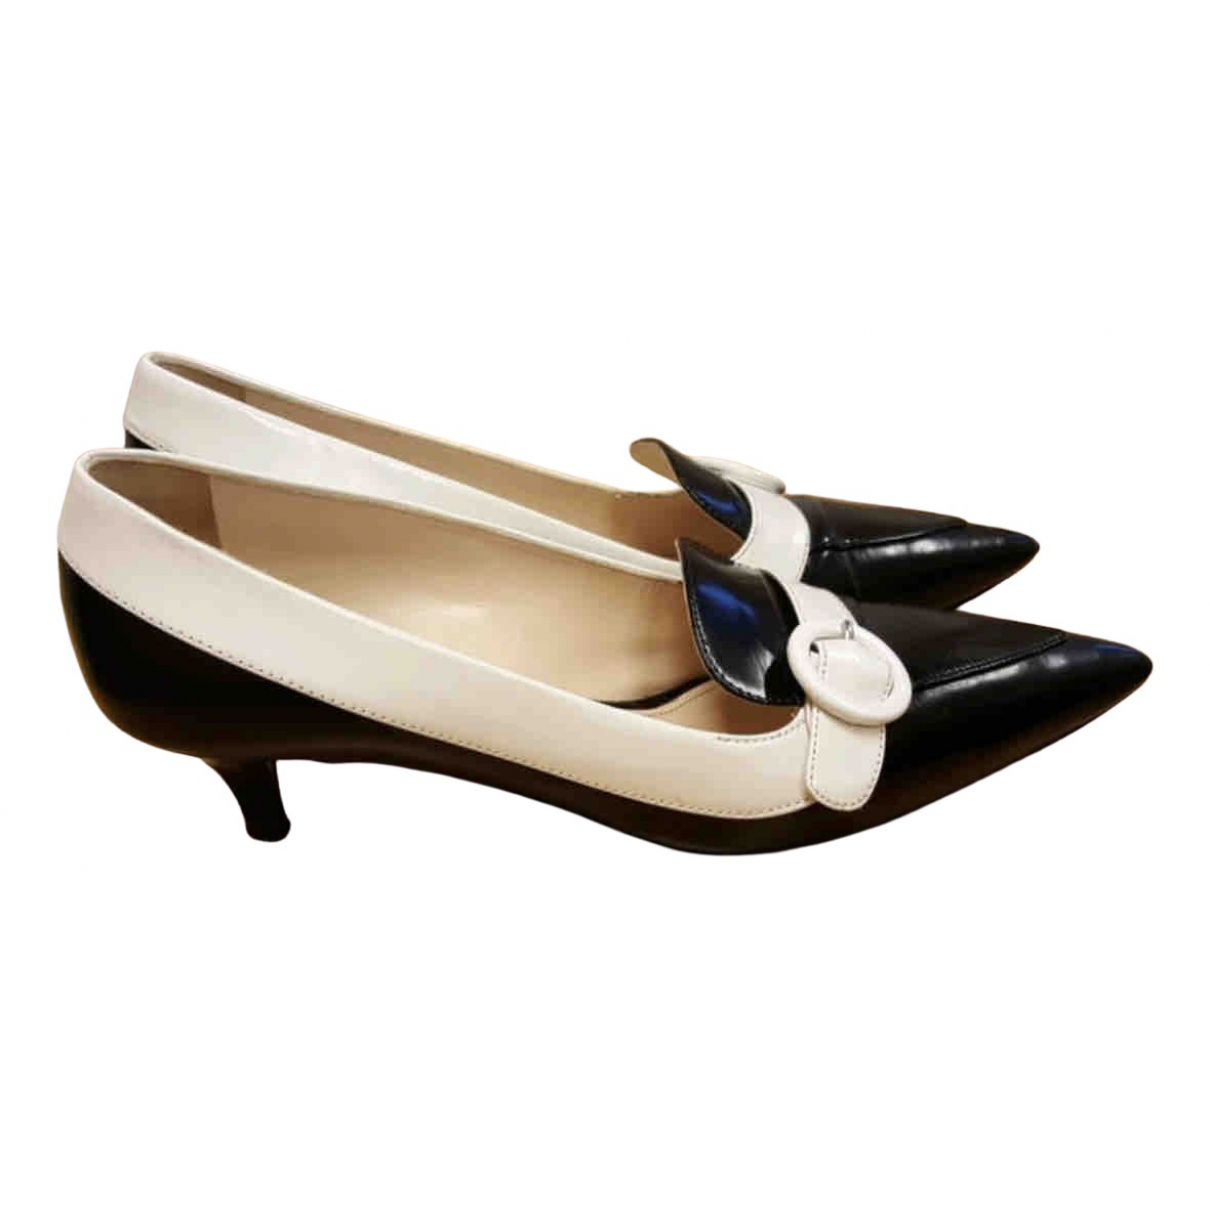 Prada N Multicolour Leather Heels for Women 36 EU